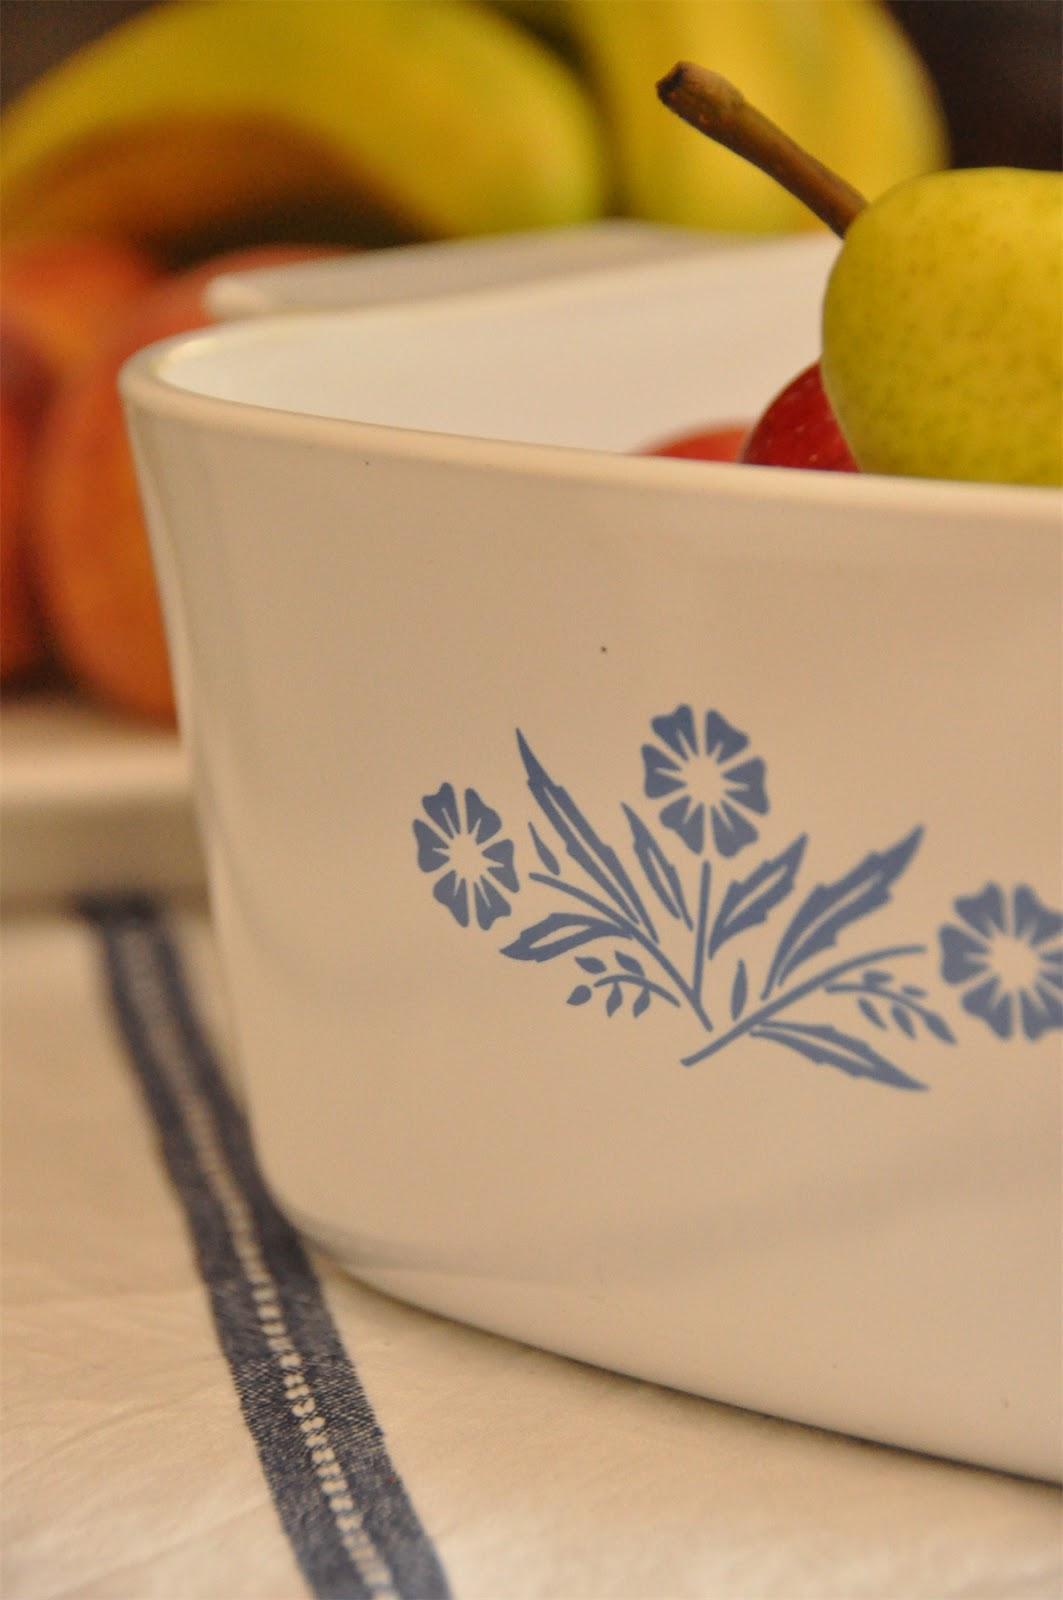 Imagery from Life: The collecting of CorningWare